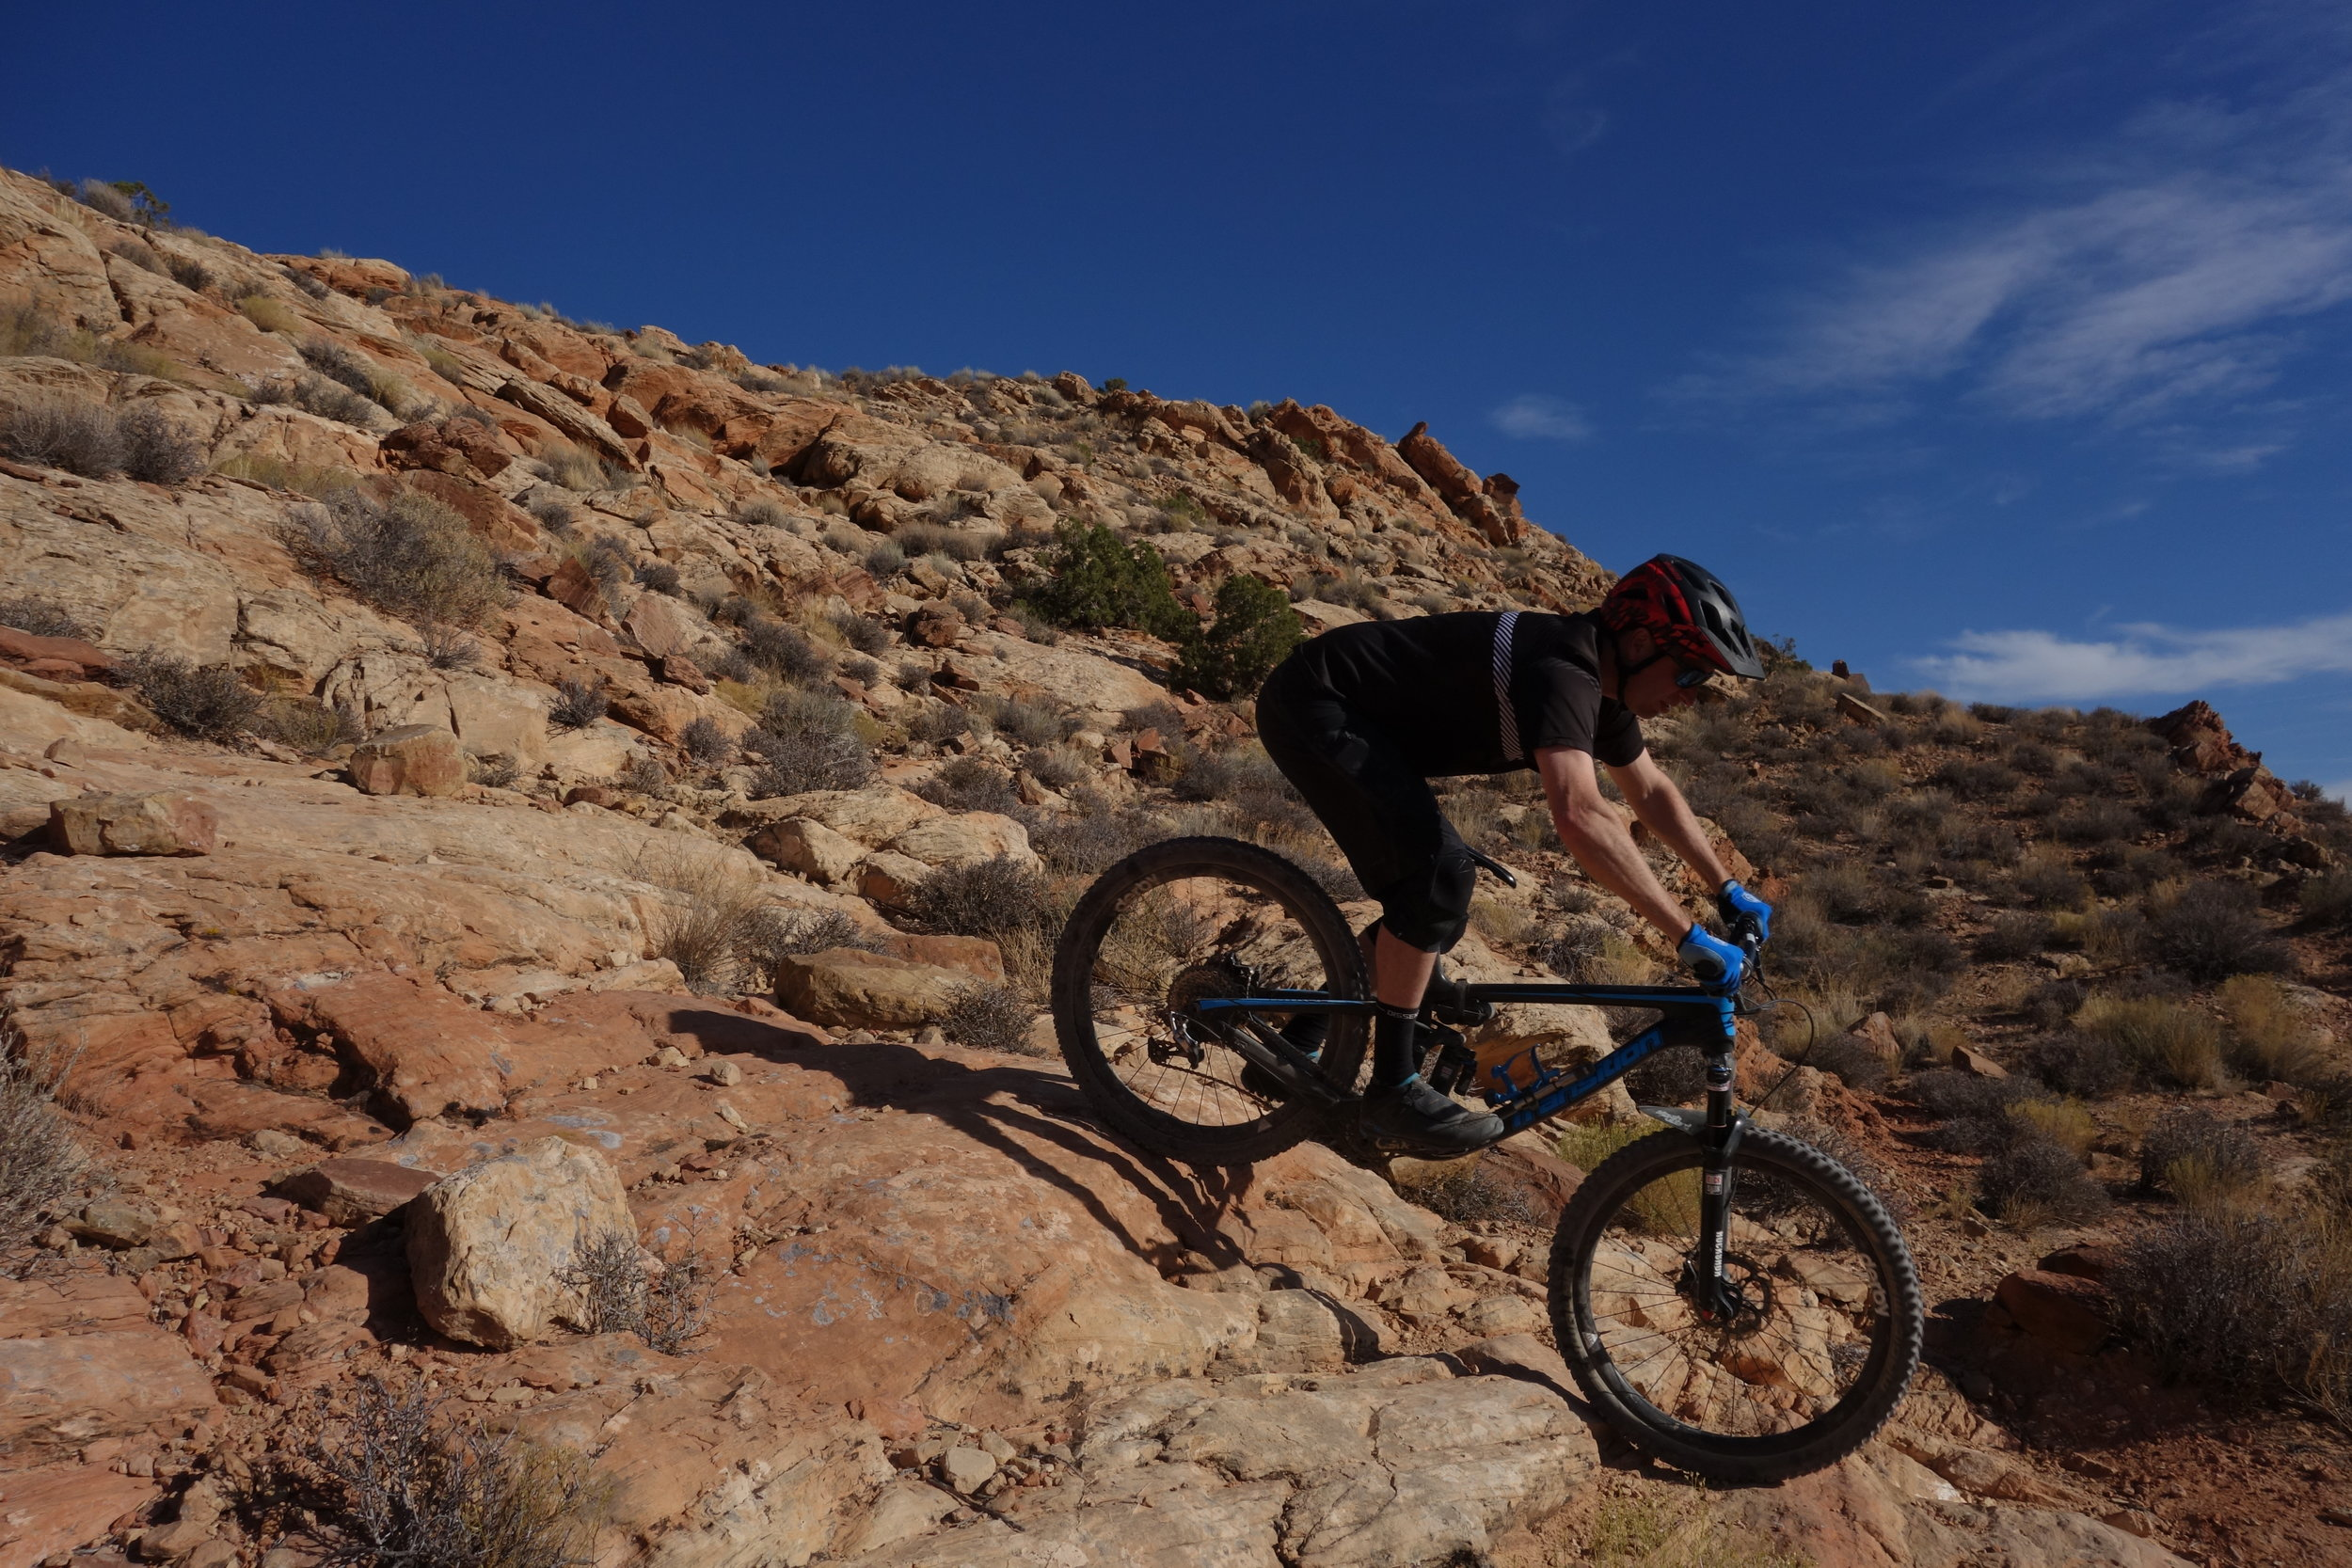 Jeff warming up his tyres on Daves trail